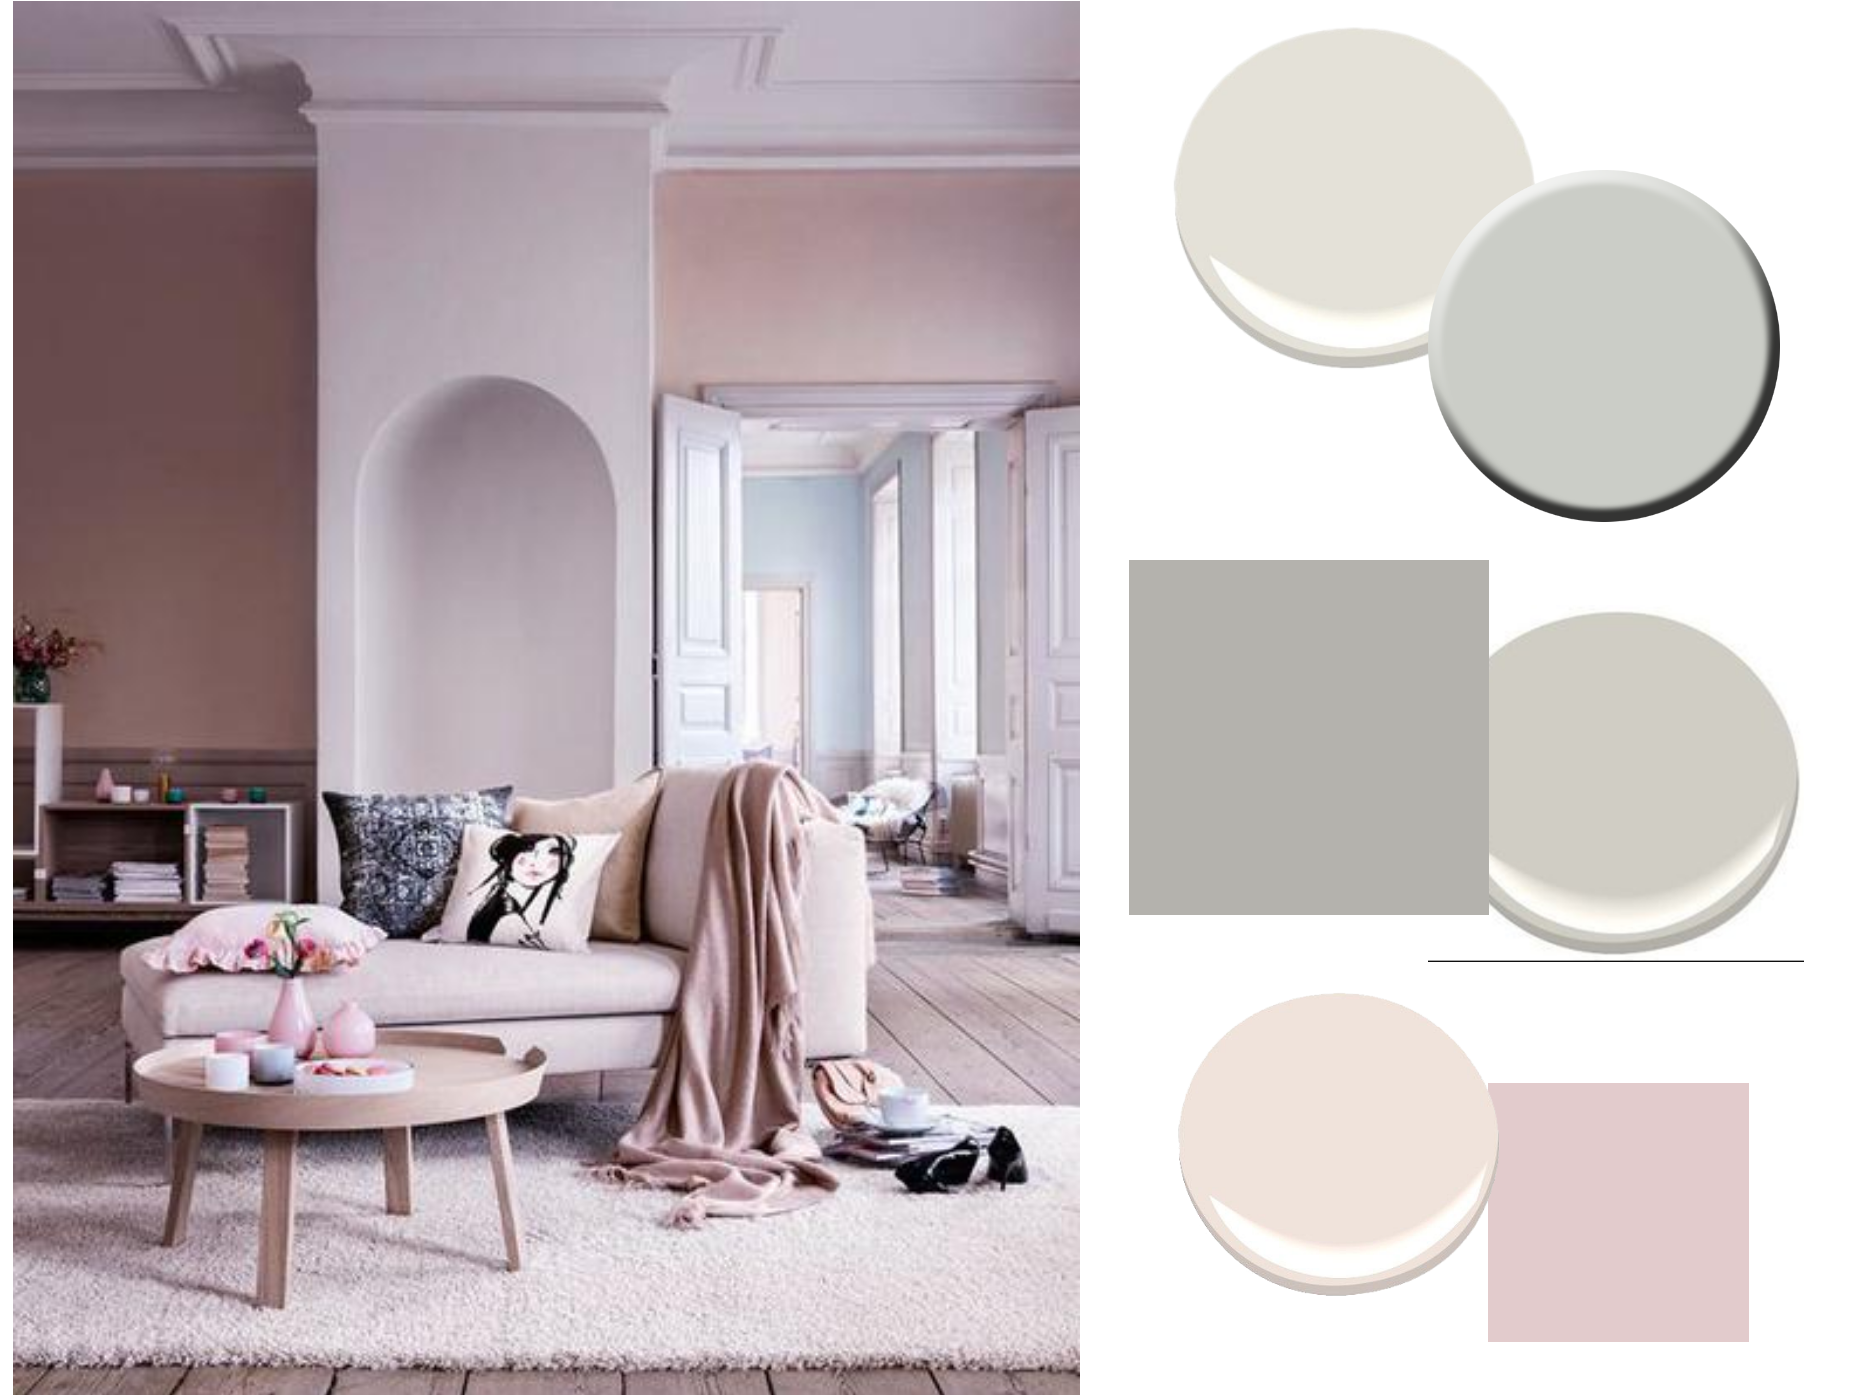 Online Interior Design Q A For Free About The Perfect Paint Color For Any Room In Your Home